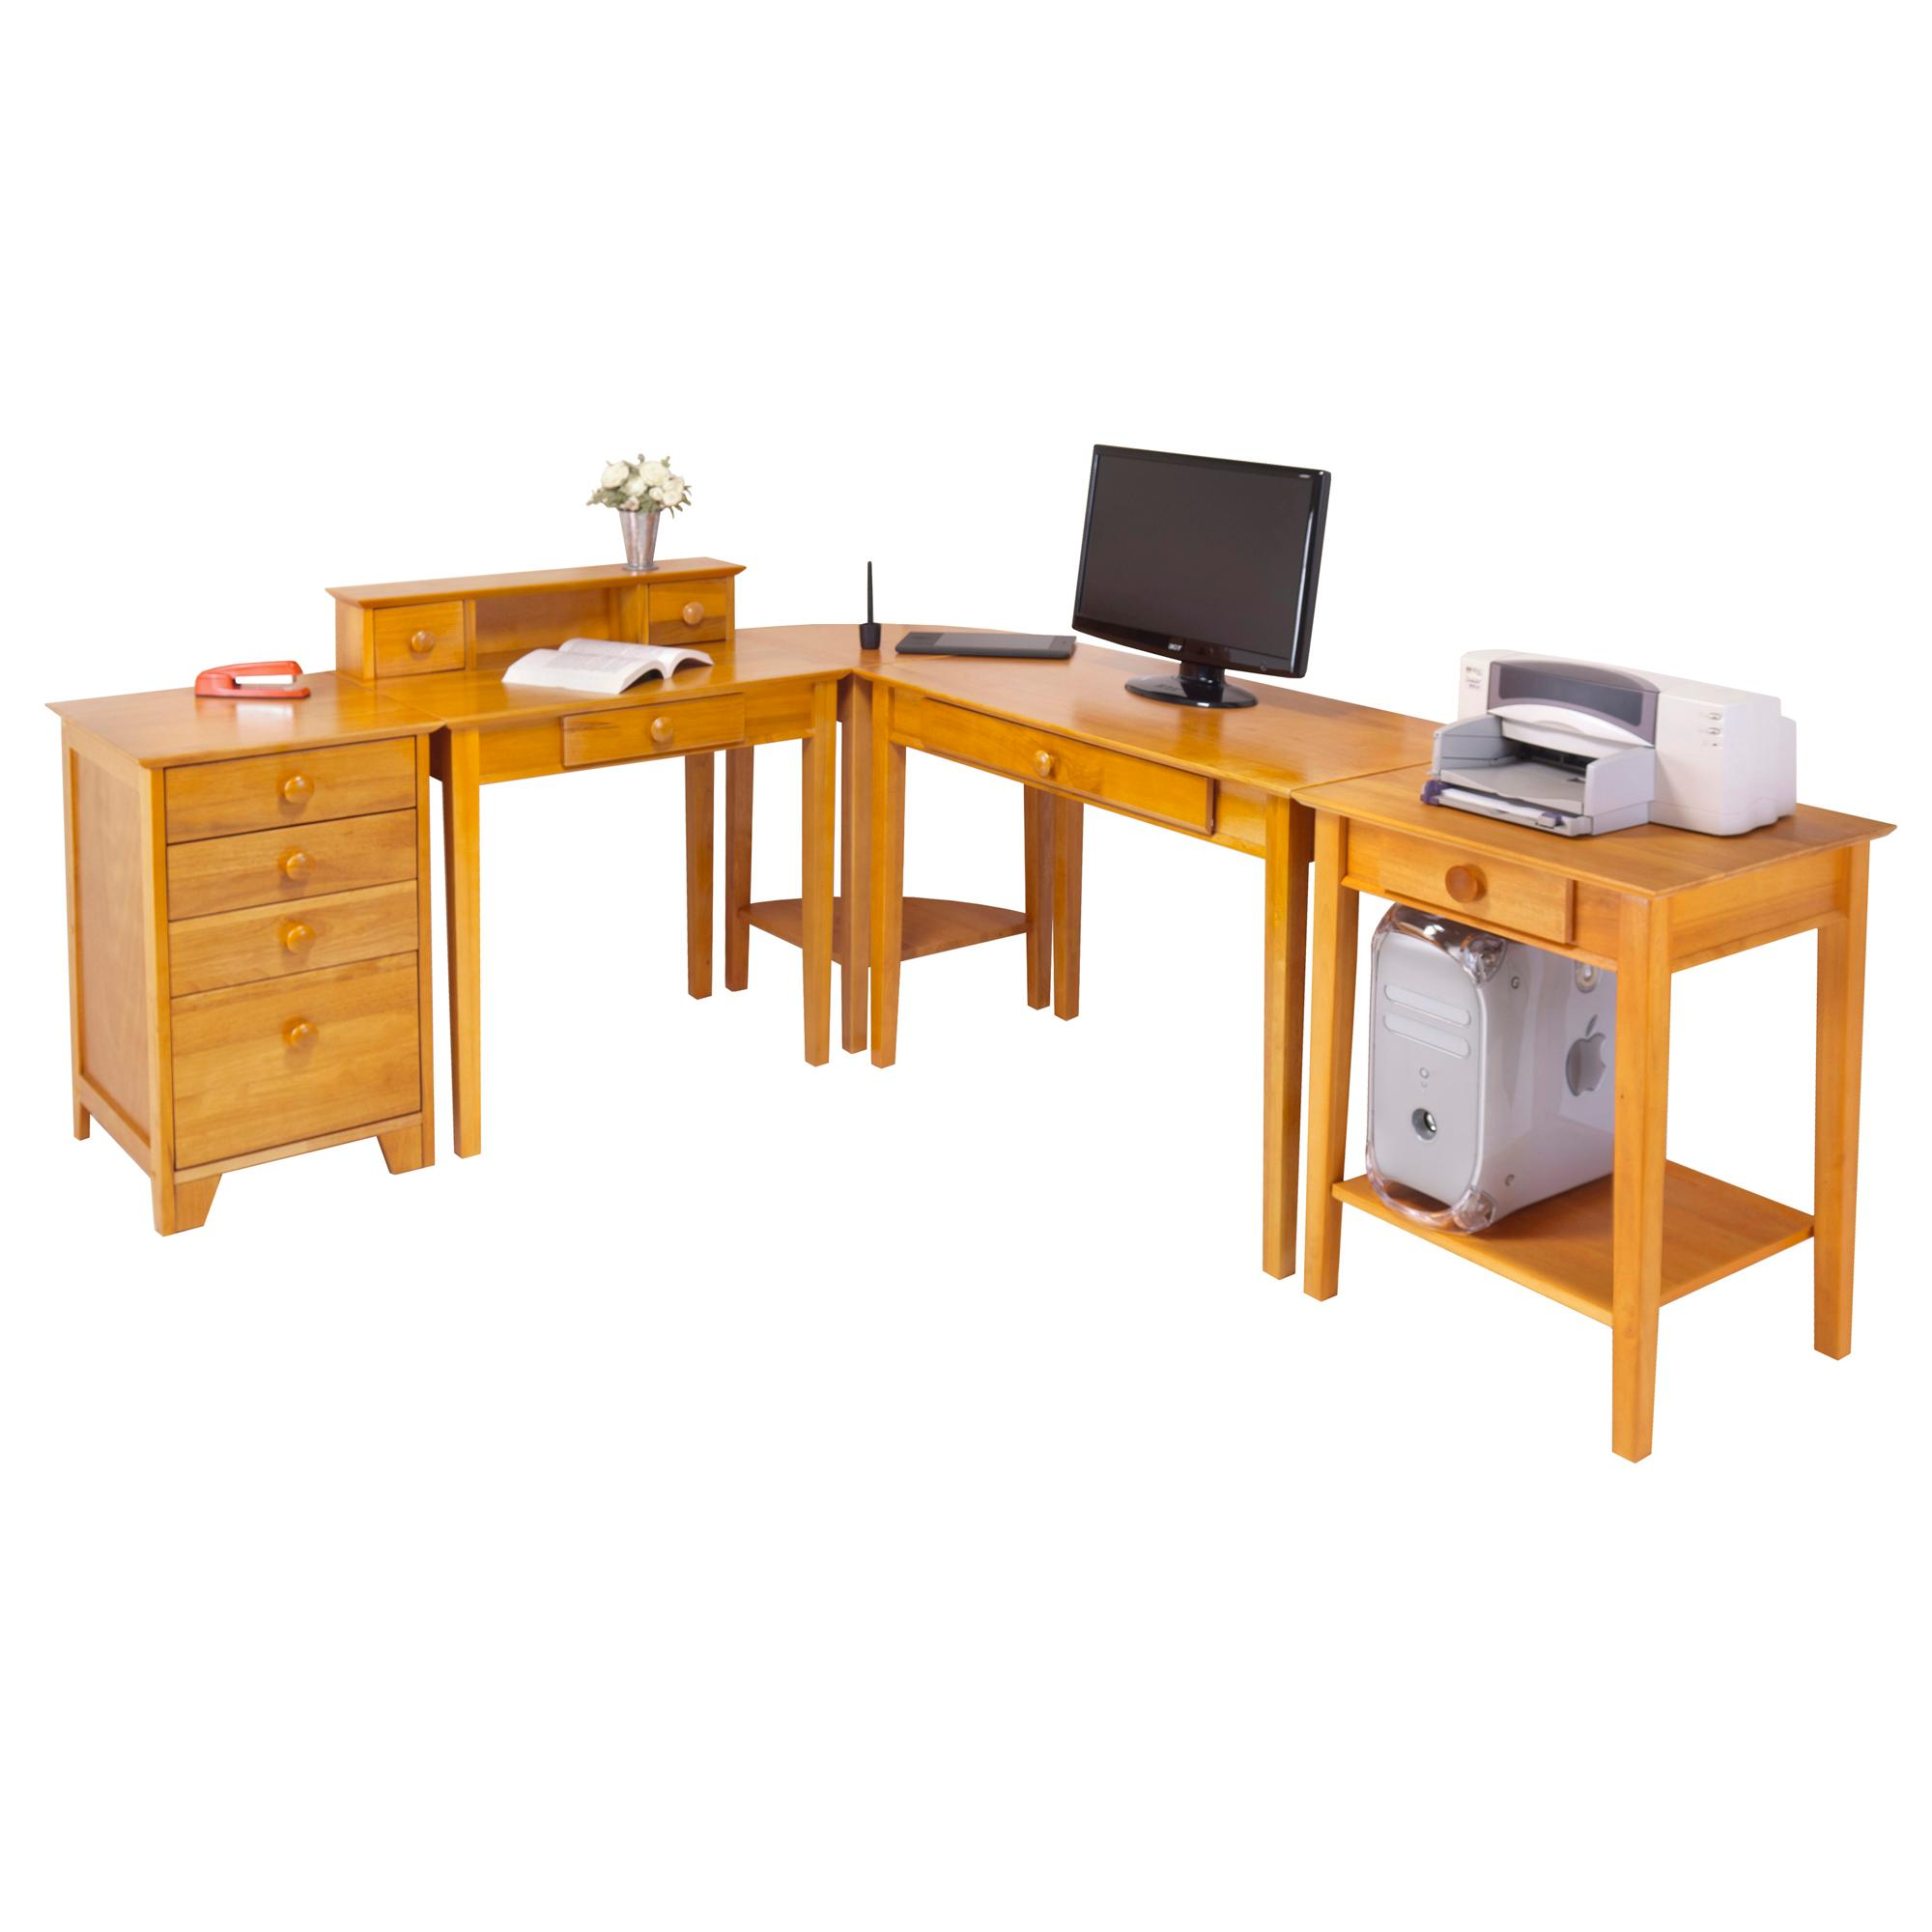 Amazon.com: Winsome Studio Home Office Furniture Set: Kitchen & Dining